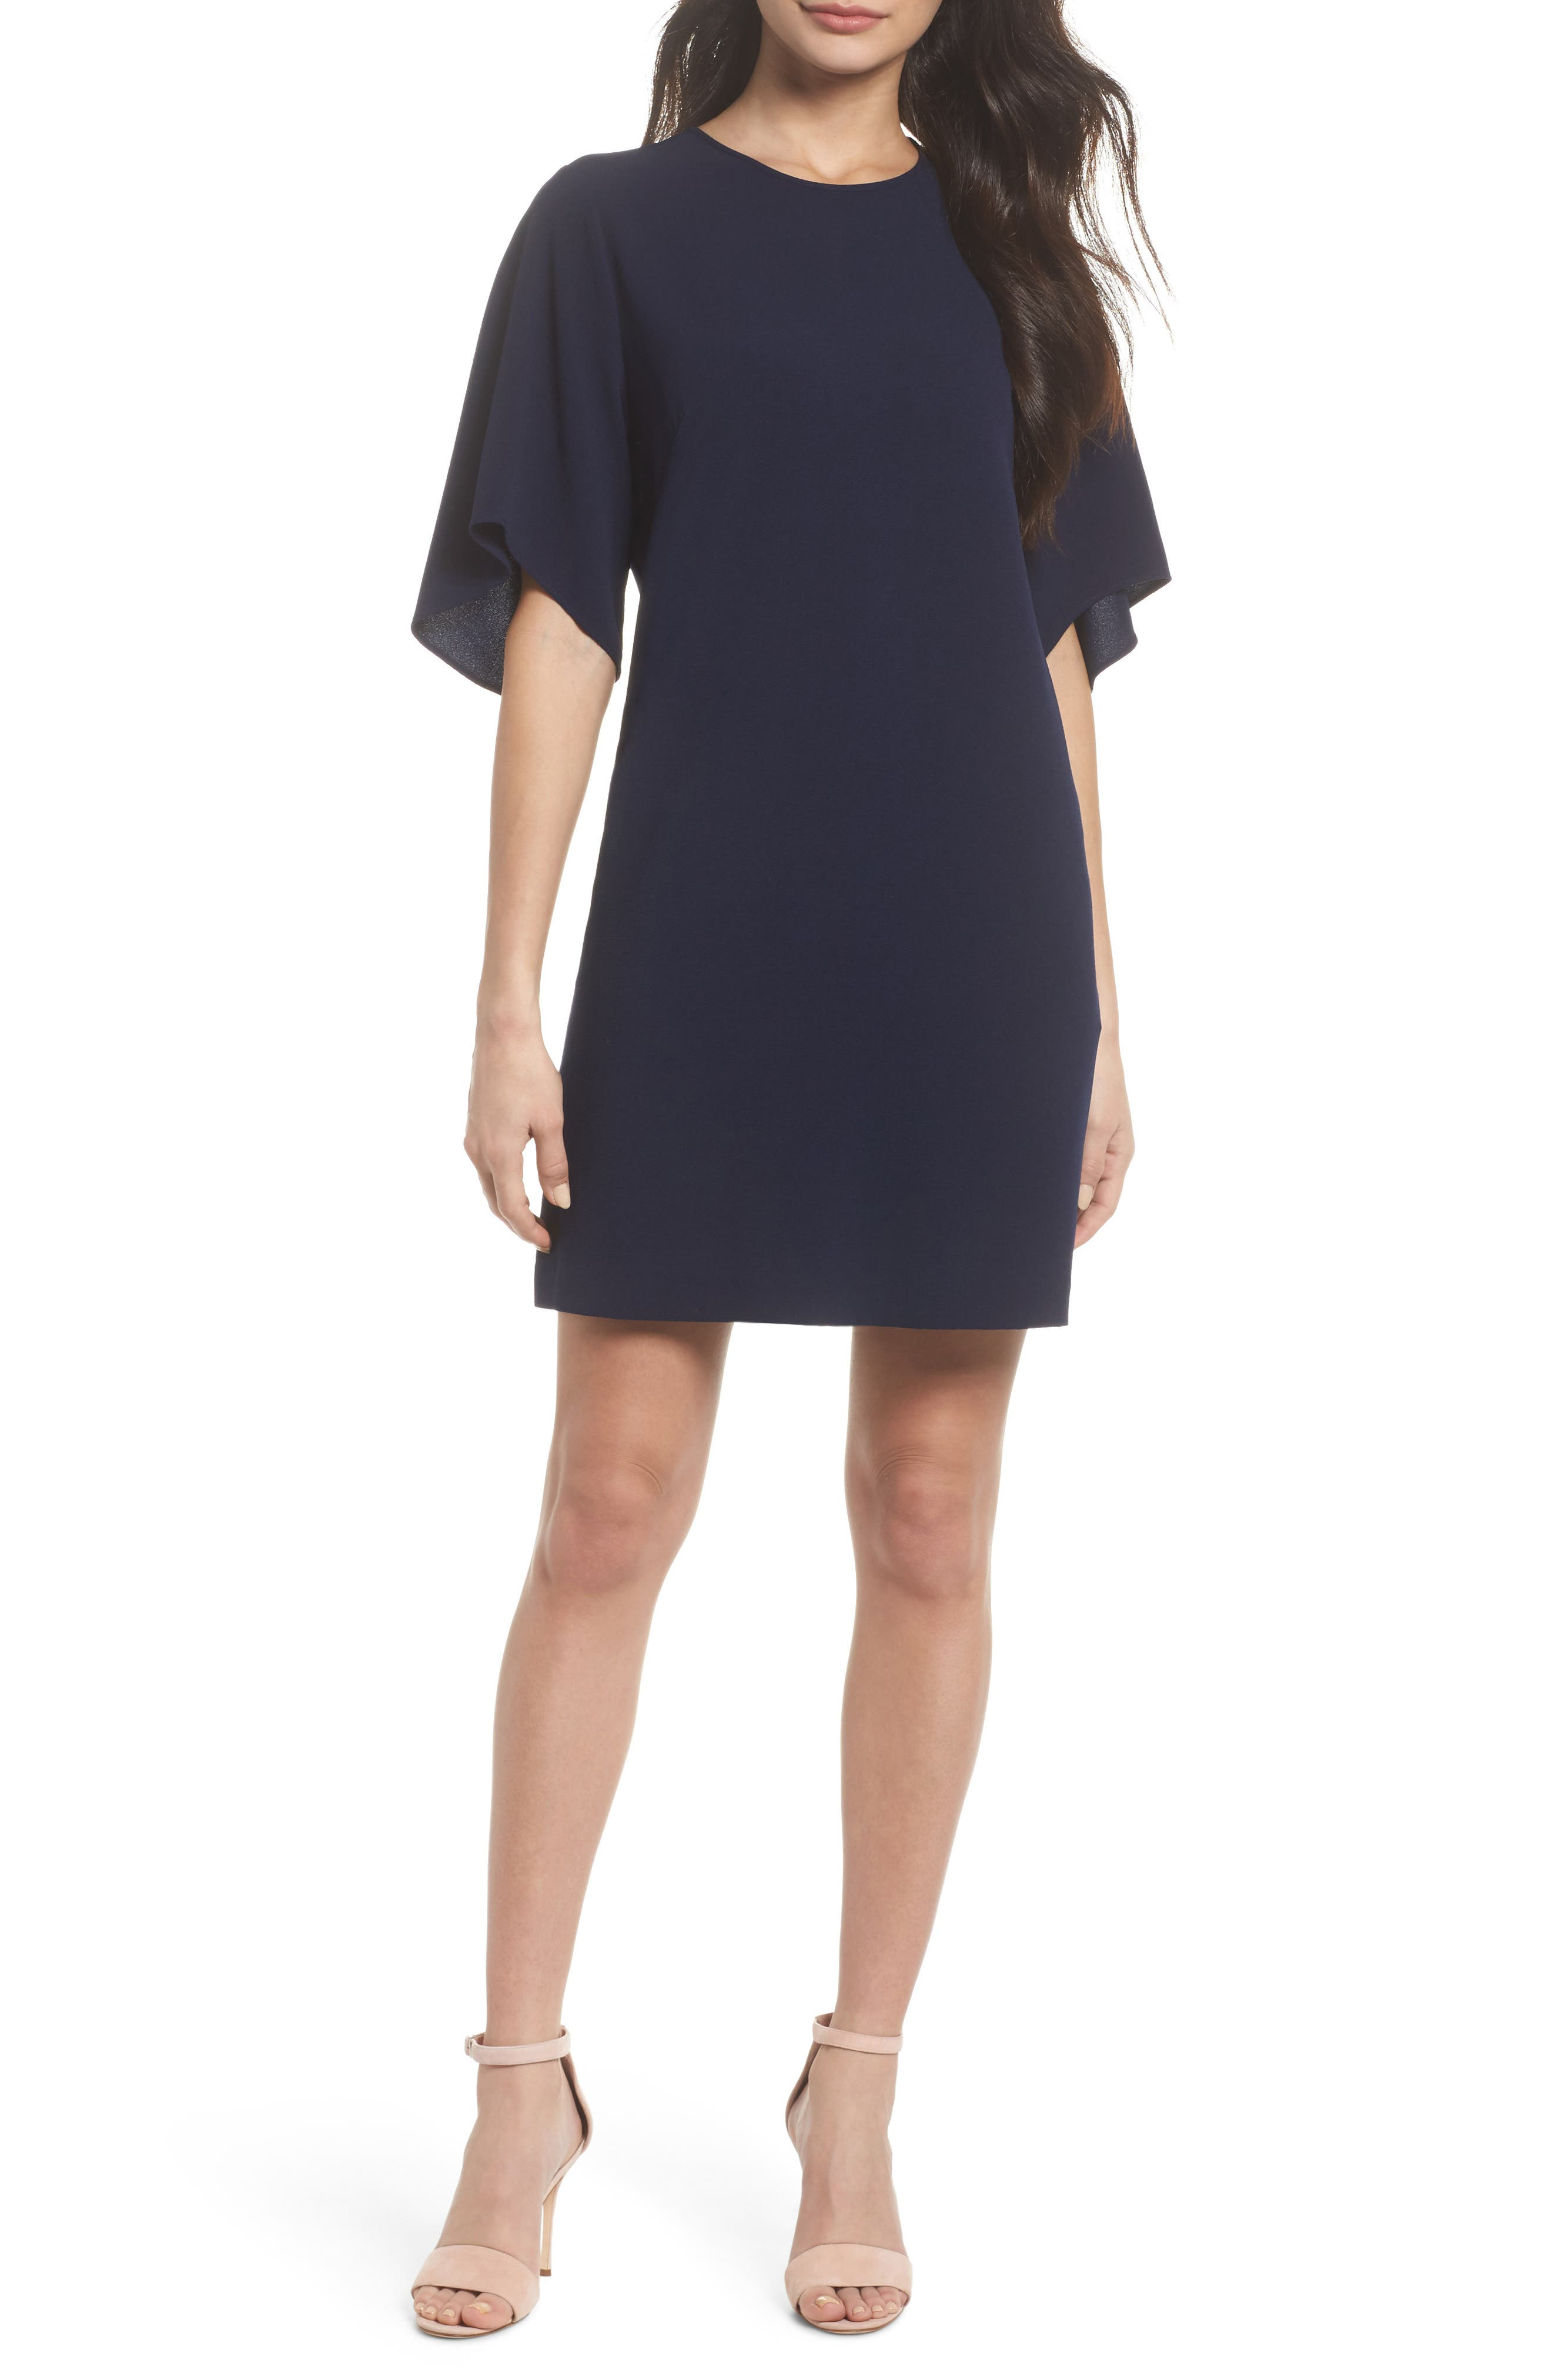 Felicity & Coco Tor Shift Dress